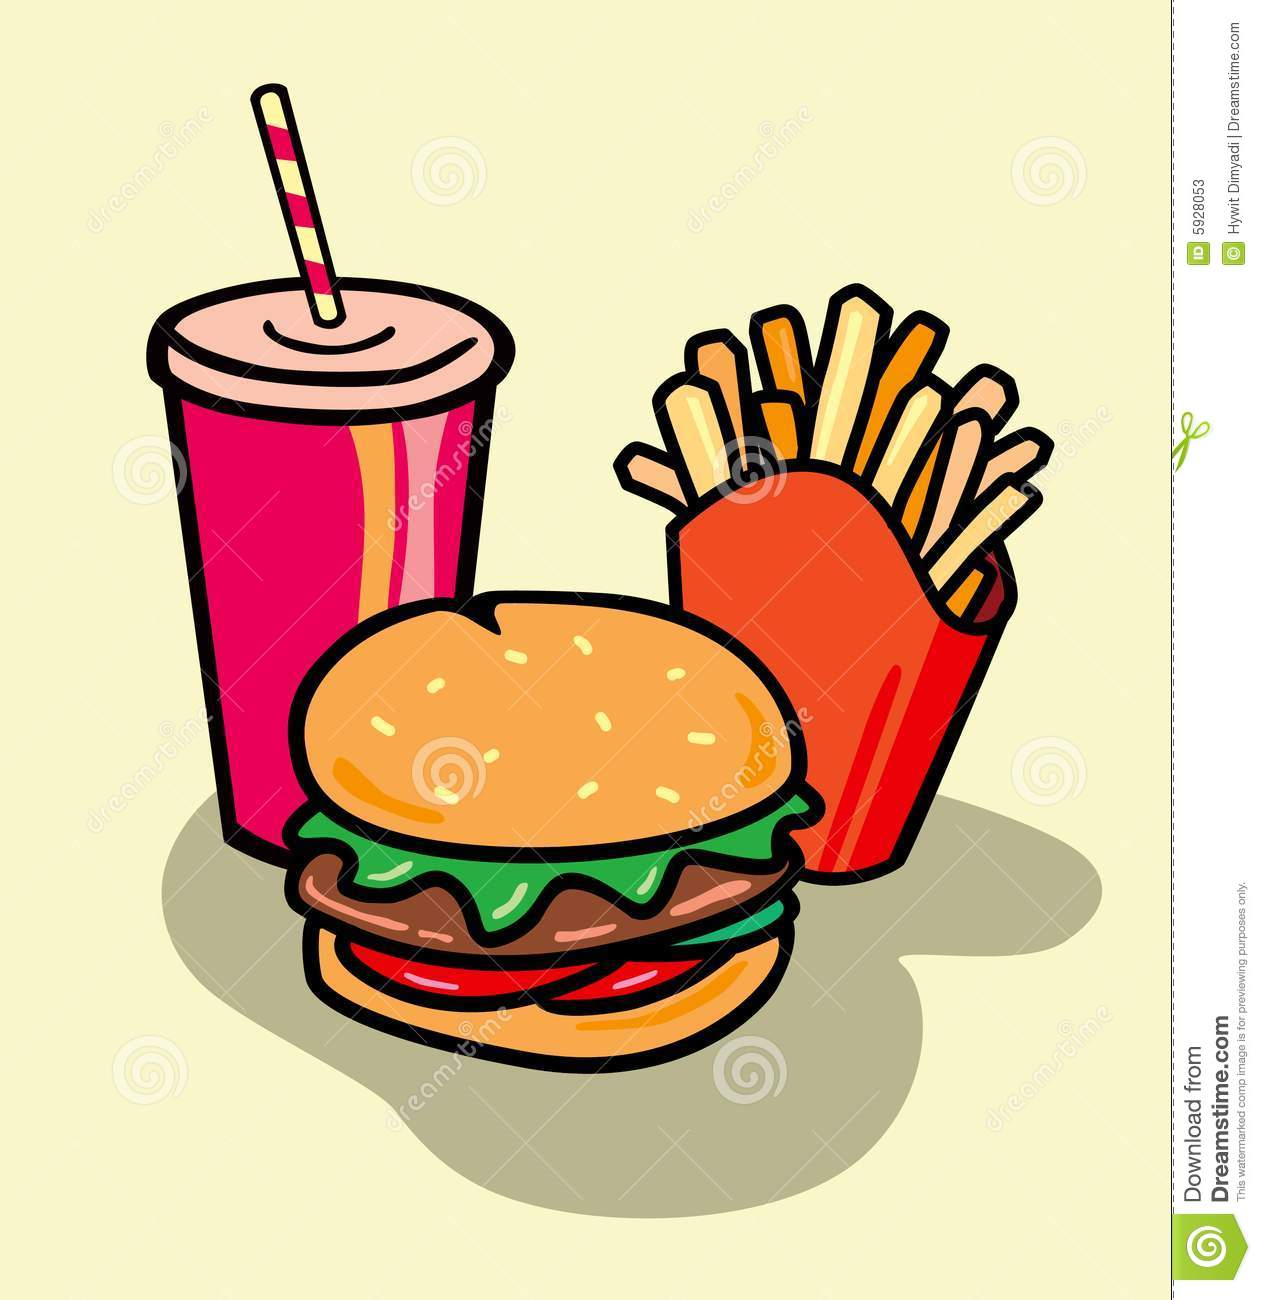 Images of free download. Fries clipart unhealthy food